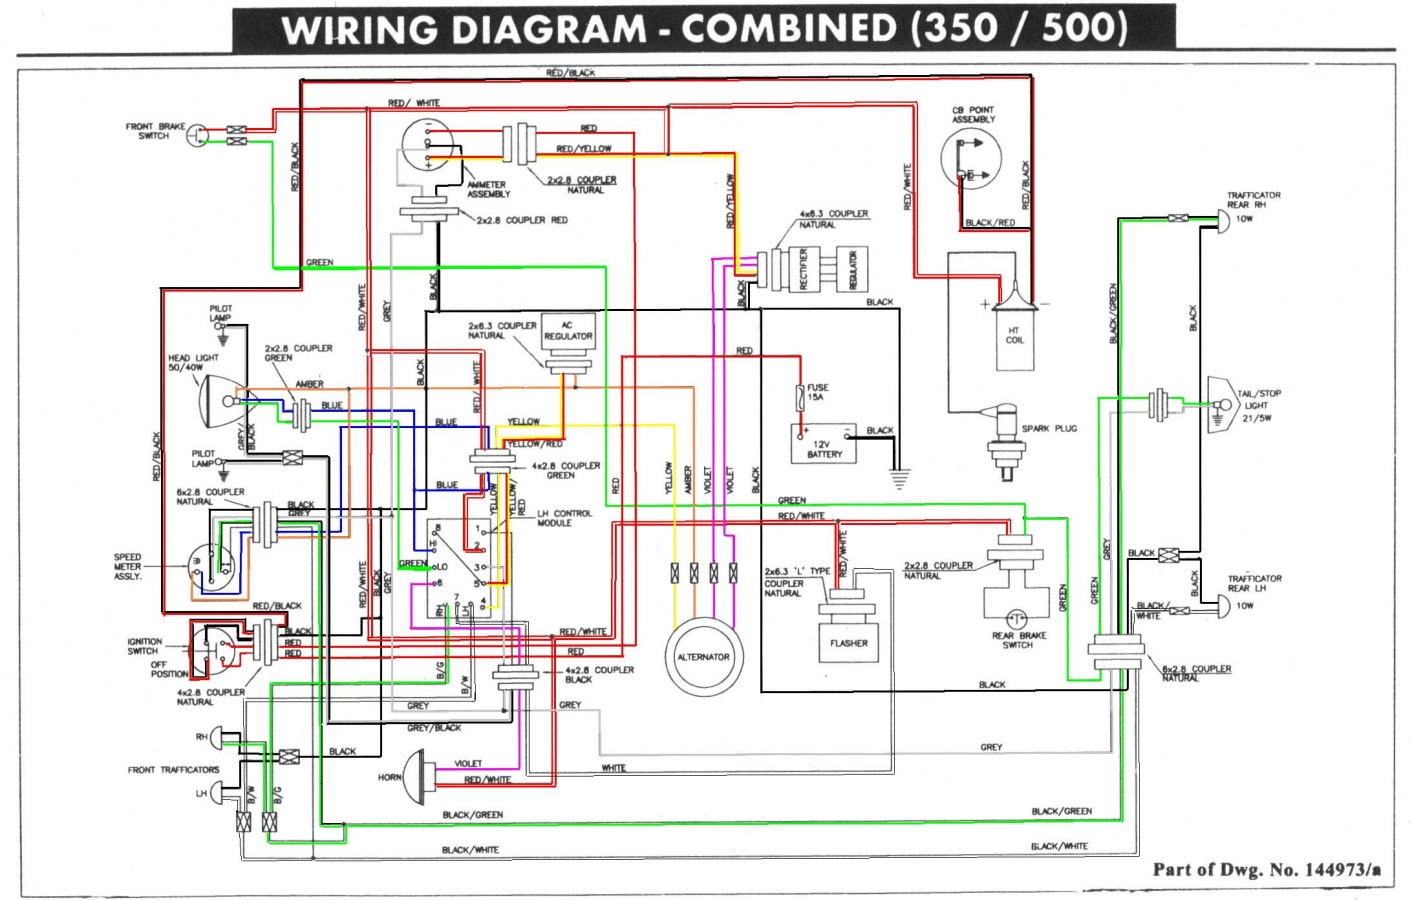 diagrams 875667 royal enfield 350 wiring diagram royal enfield royal enfield wiring diagrams at highcare.asia